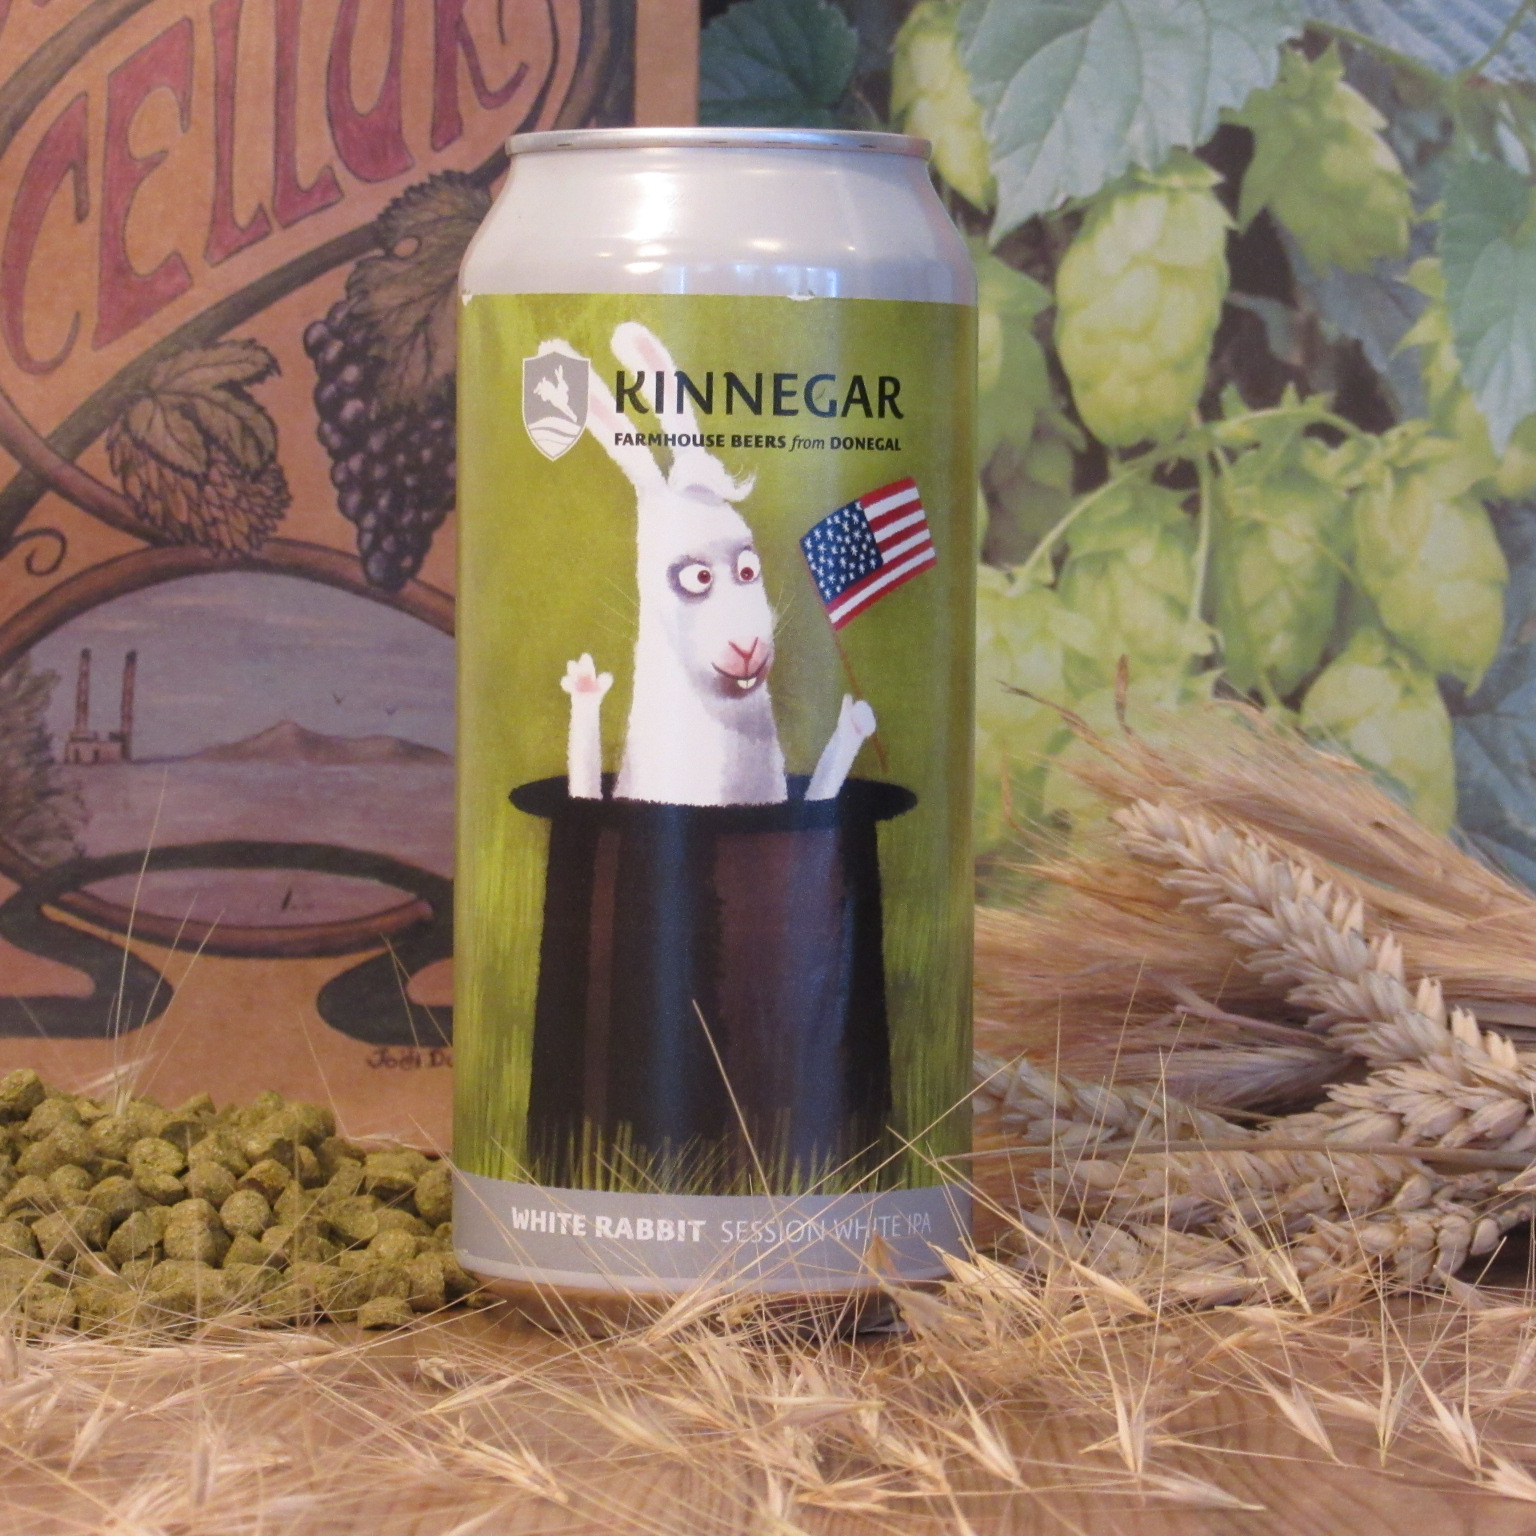 Kinnegar White Rabbit Session White IPA